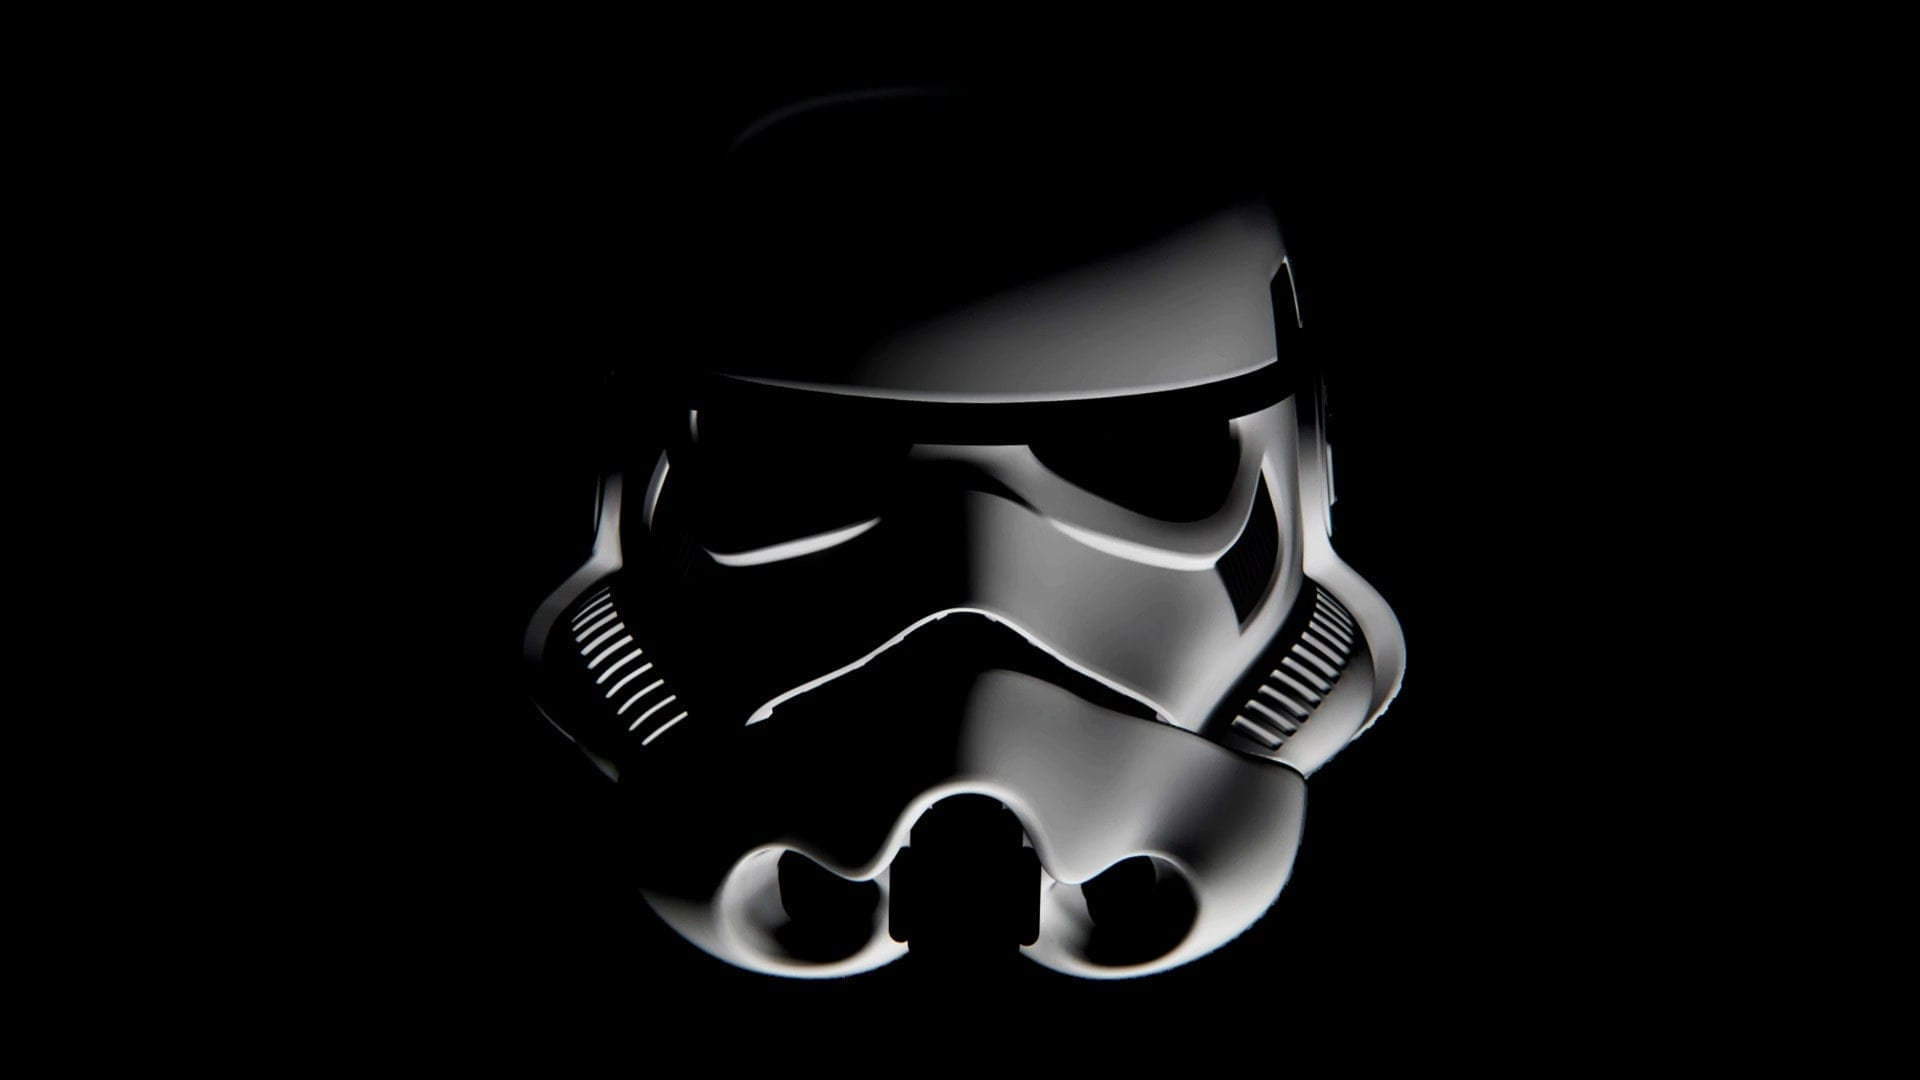 Star Wars – The Evolution of the Stormtrooper